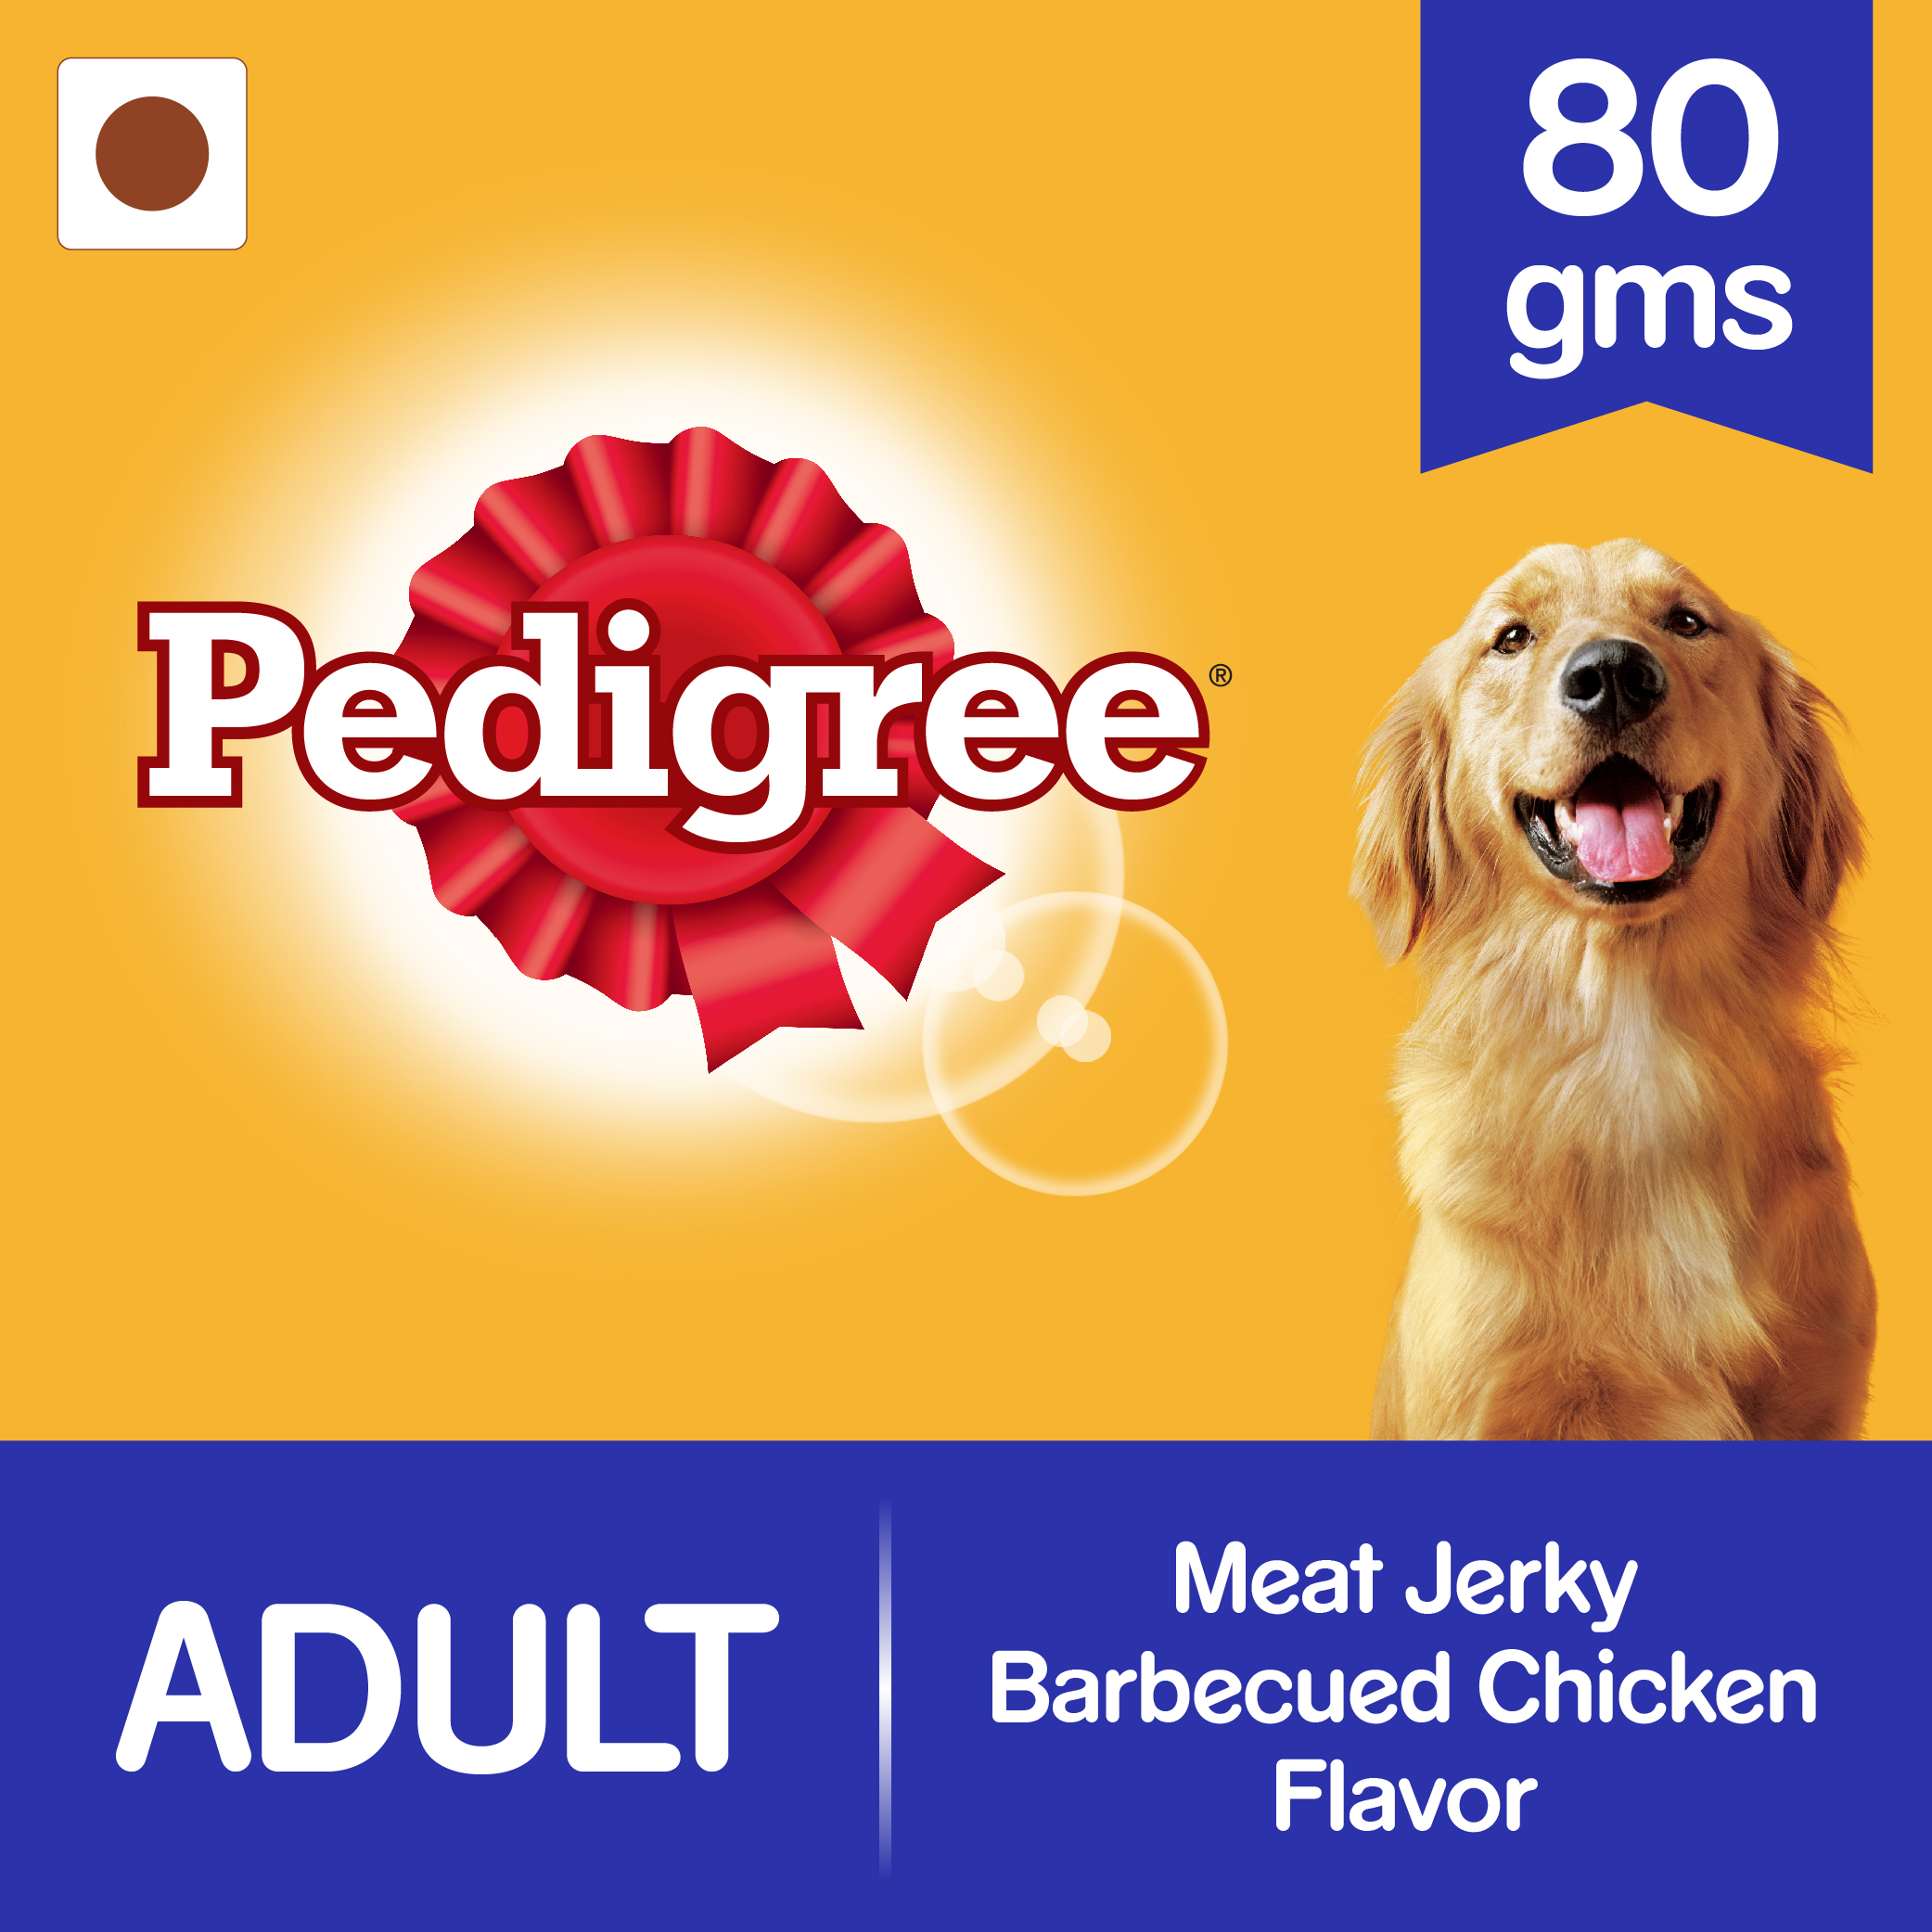 Pedigree Meat Jerky Barbecued Chicken Flavor - 80 gm (Pack of 12)